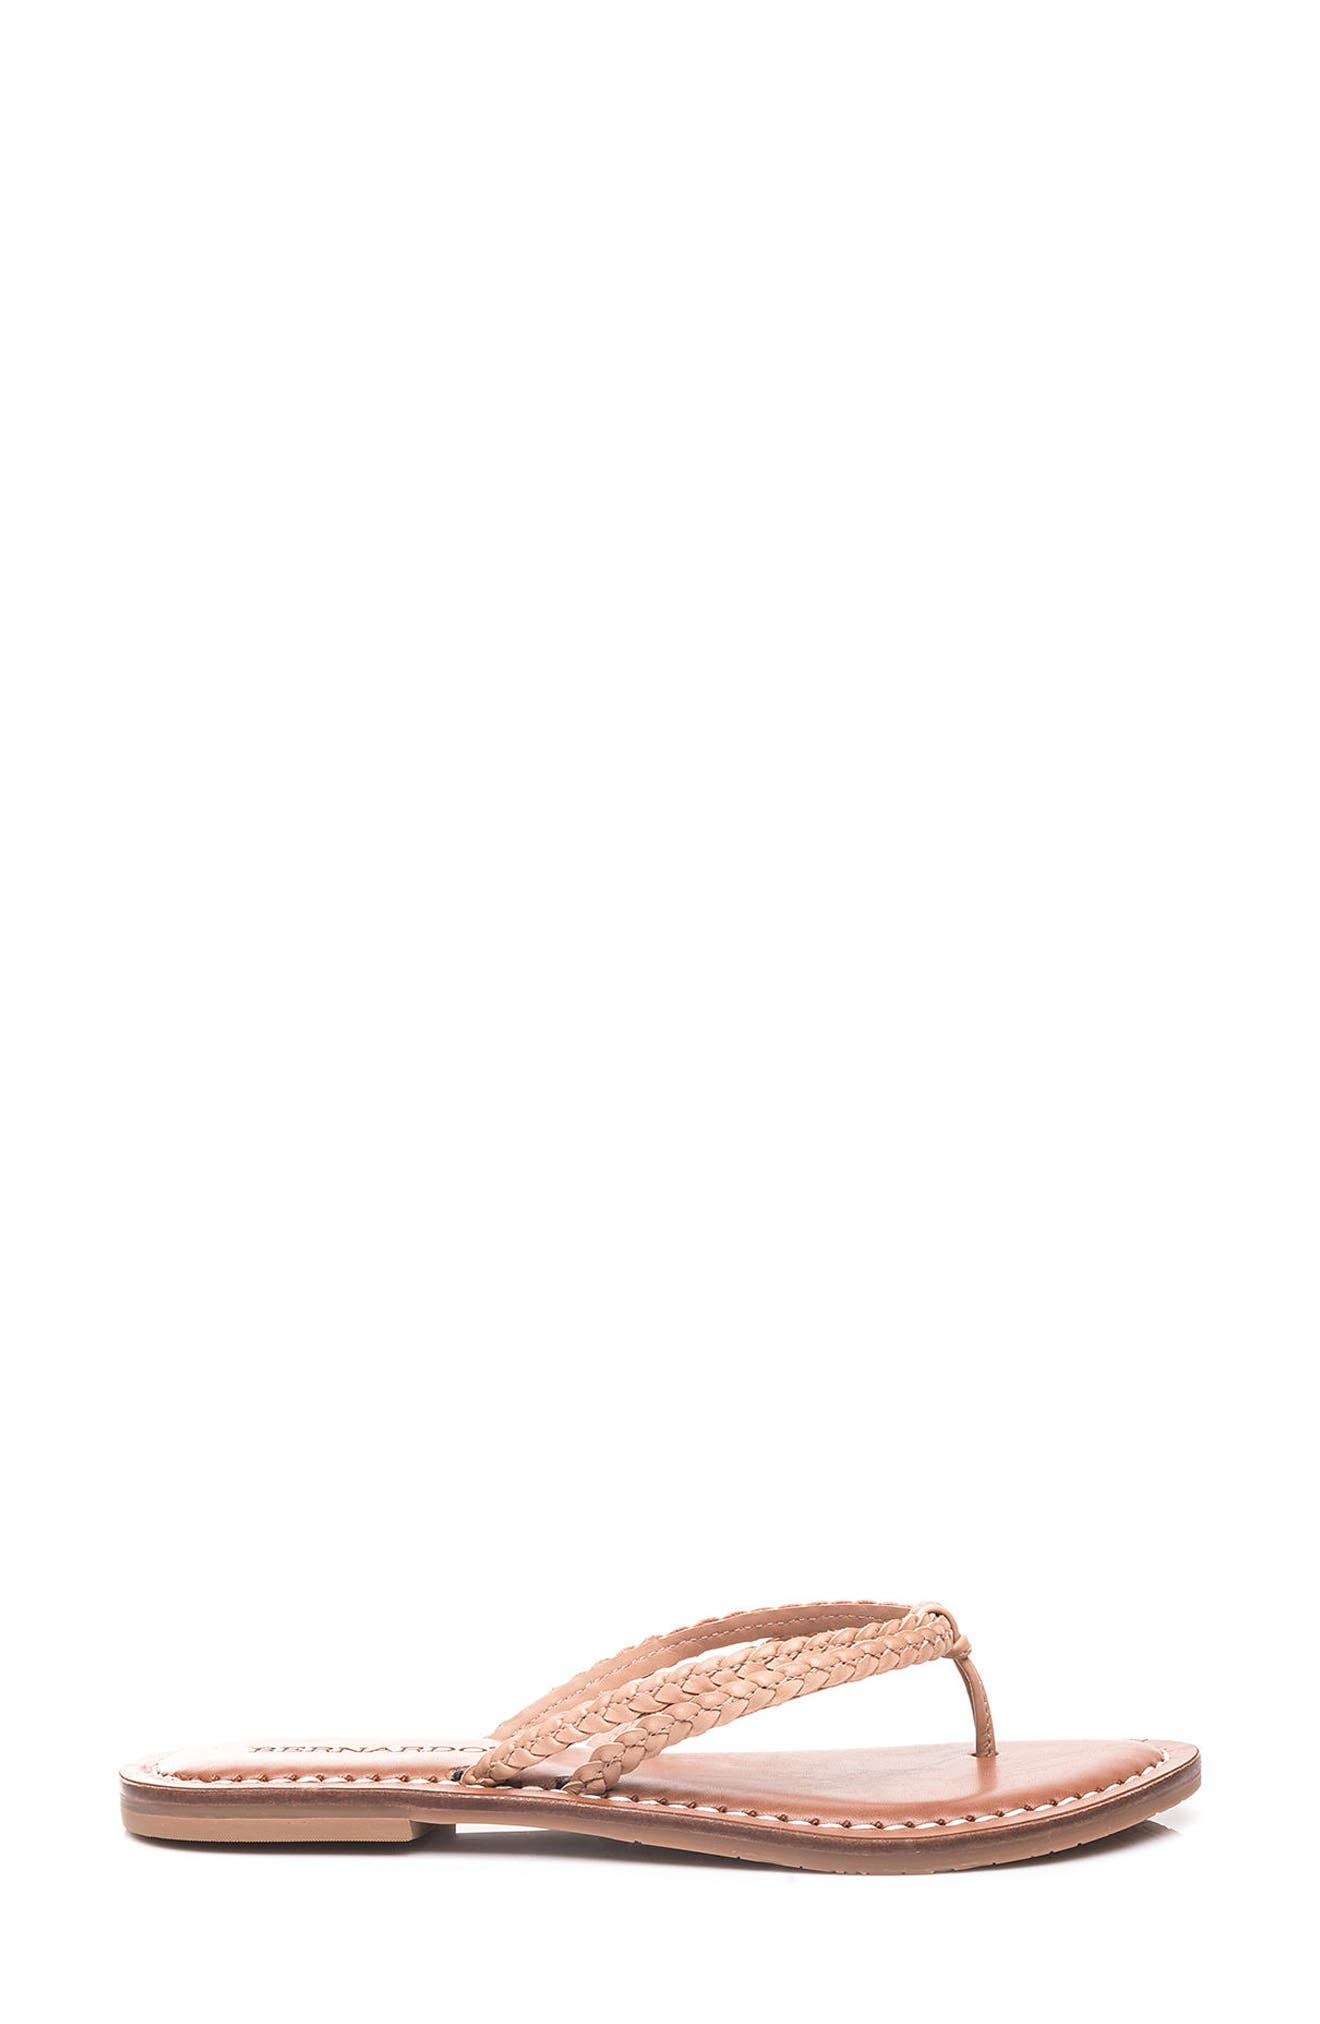 Bernardo Greta Braided Strap Sandal,                             Alternate thumbnail 19, color,